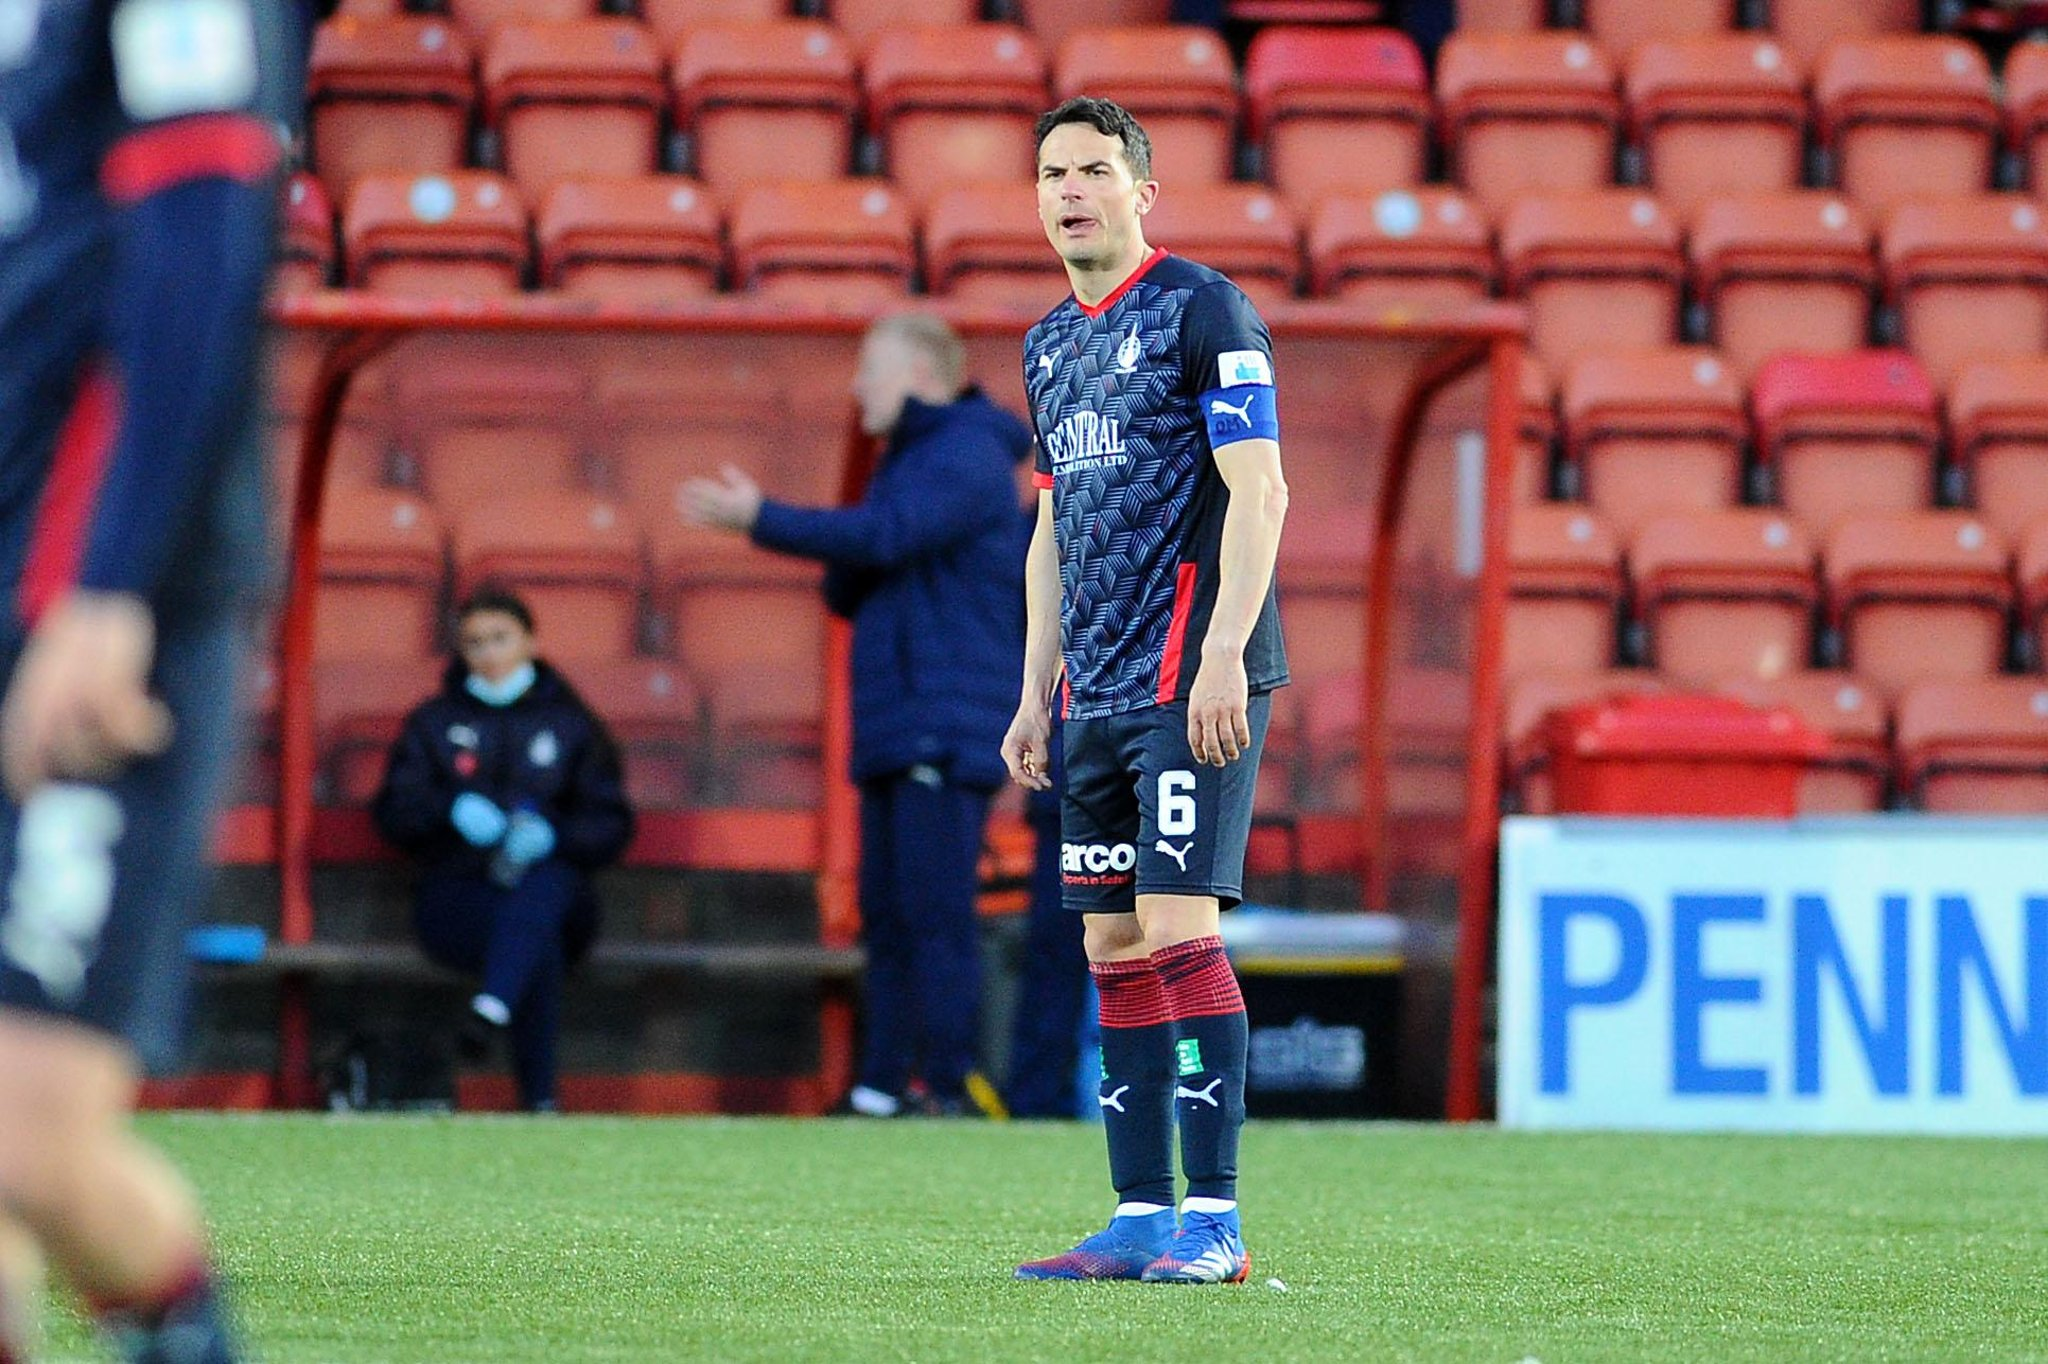 Airdrieonians 2-0 Falkirk: Woe for Bairns as defeat sees them miss out on Championship play-off semi-finals